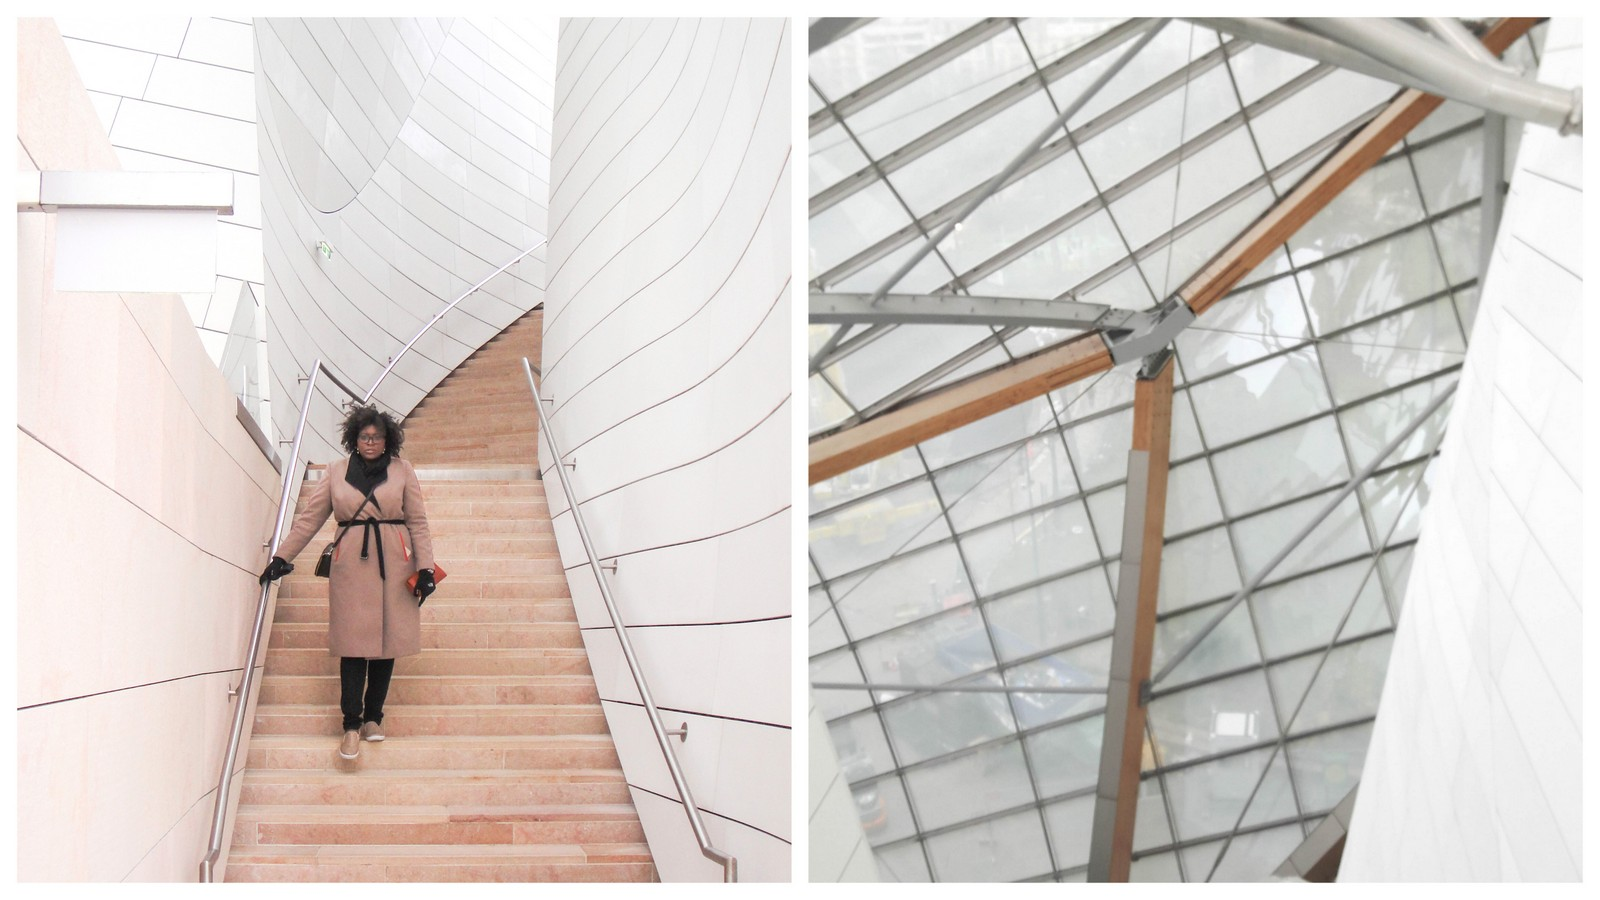 Foundation Louis Vuitton In Paris - Tips on Fondation Louis Vuitton Museum Tickets, opening Hours and Metro directions from Paris.